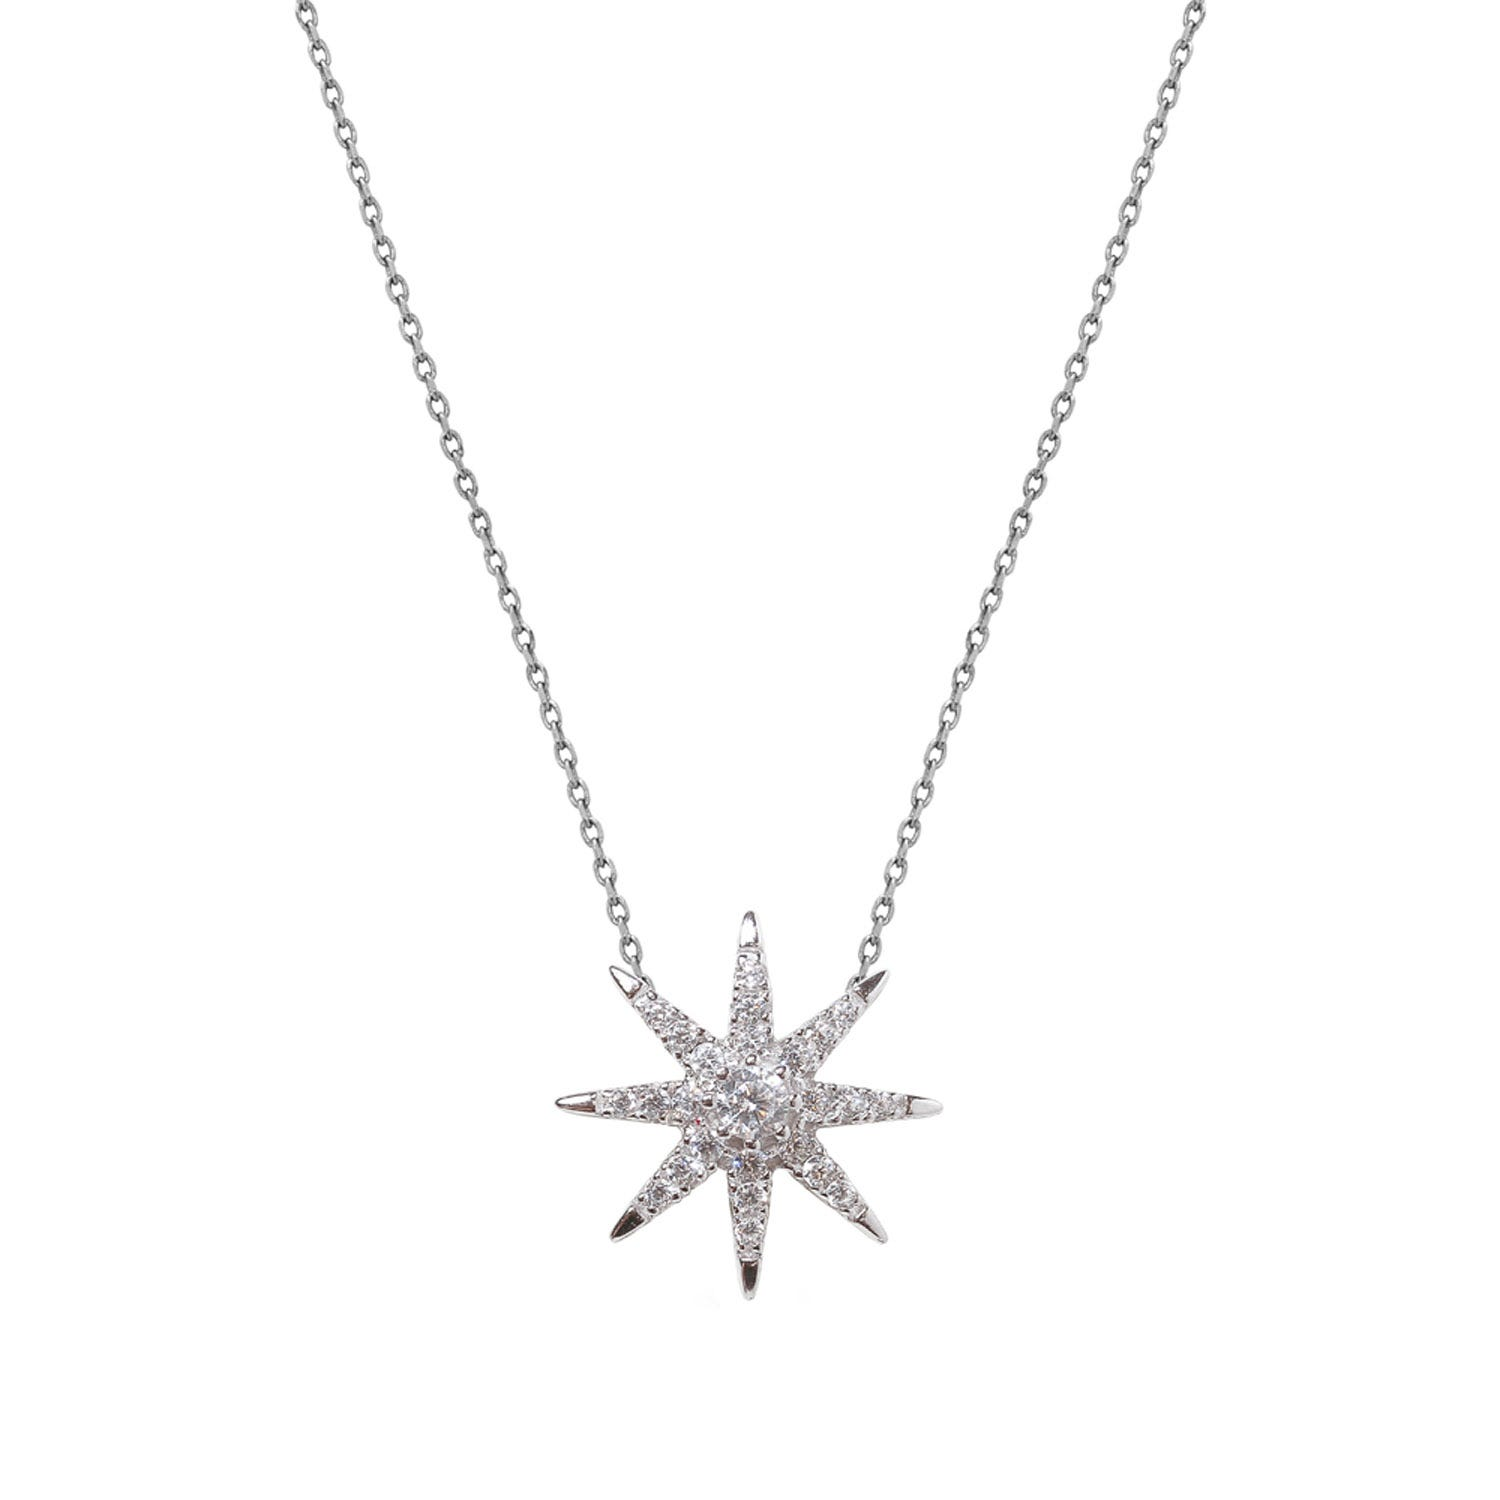 CARAT* London Stella Collection Sterling Silver Atrias Pendant & Chain